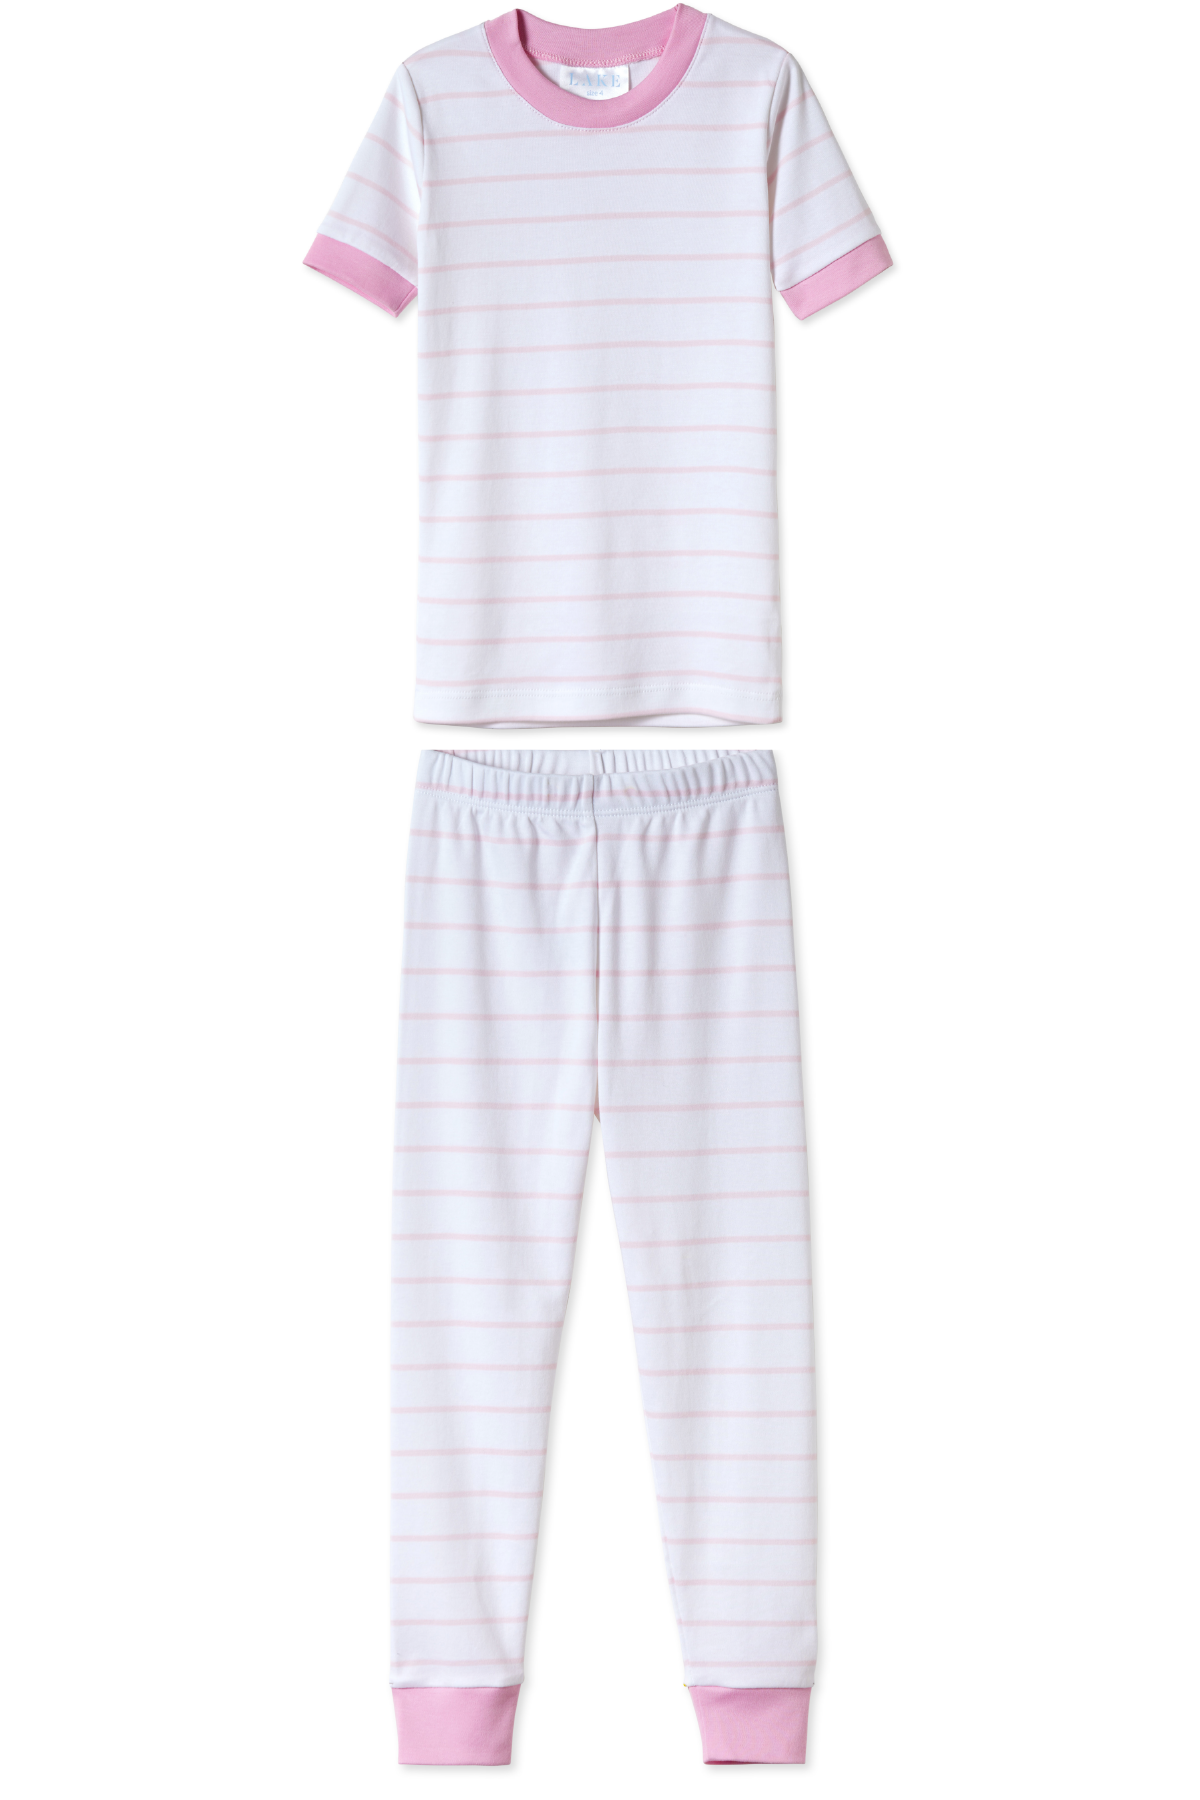 Kids Short-Long Set in Peony